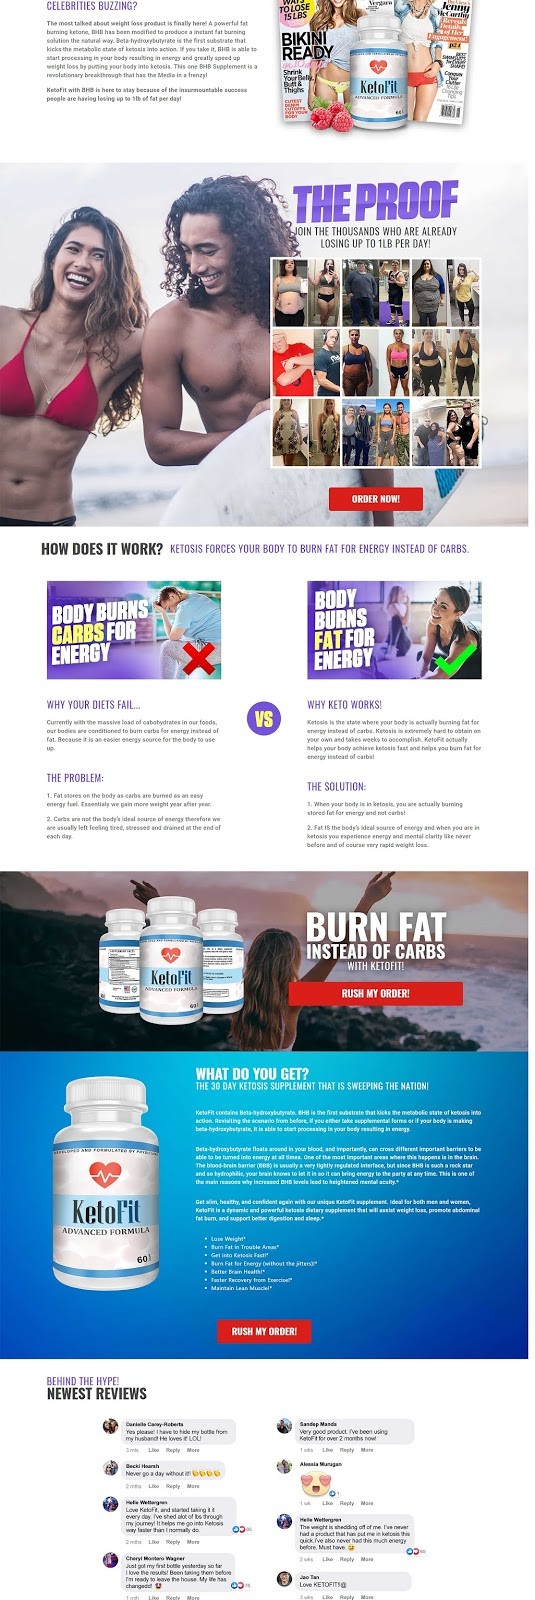 Read All Side Effect Of Keto Fit